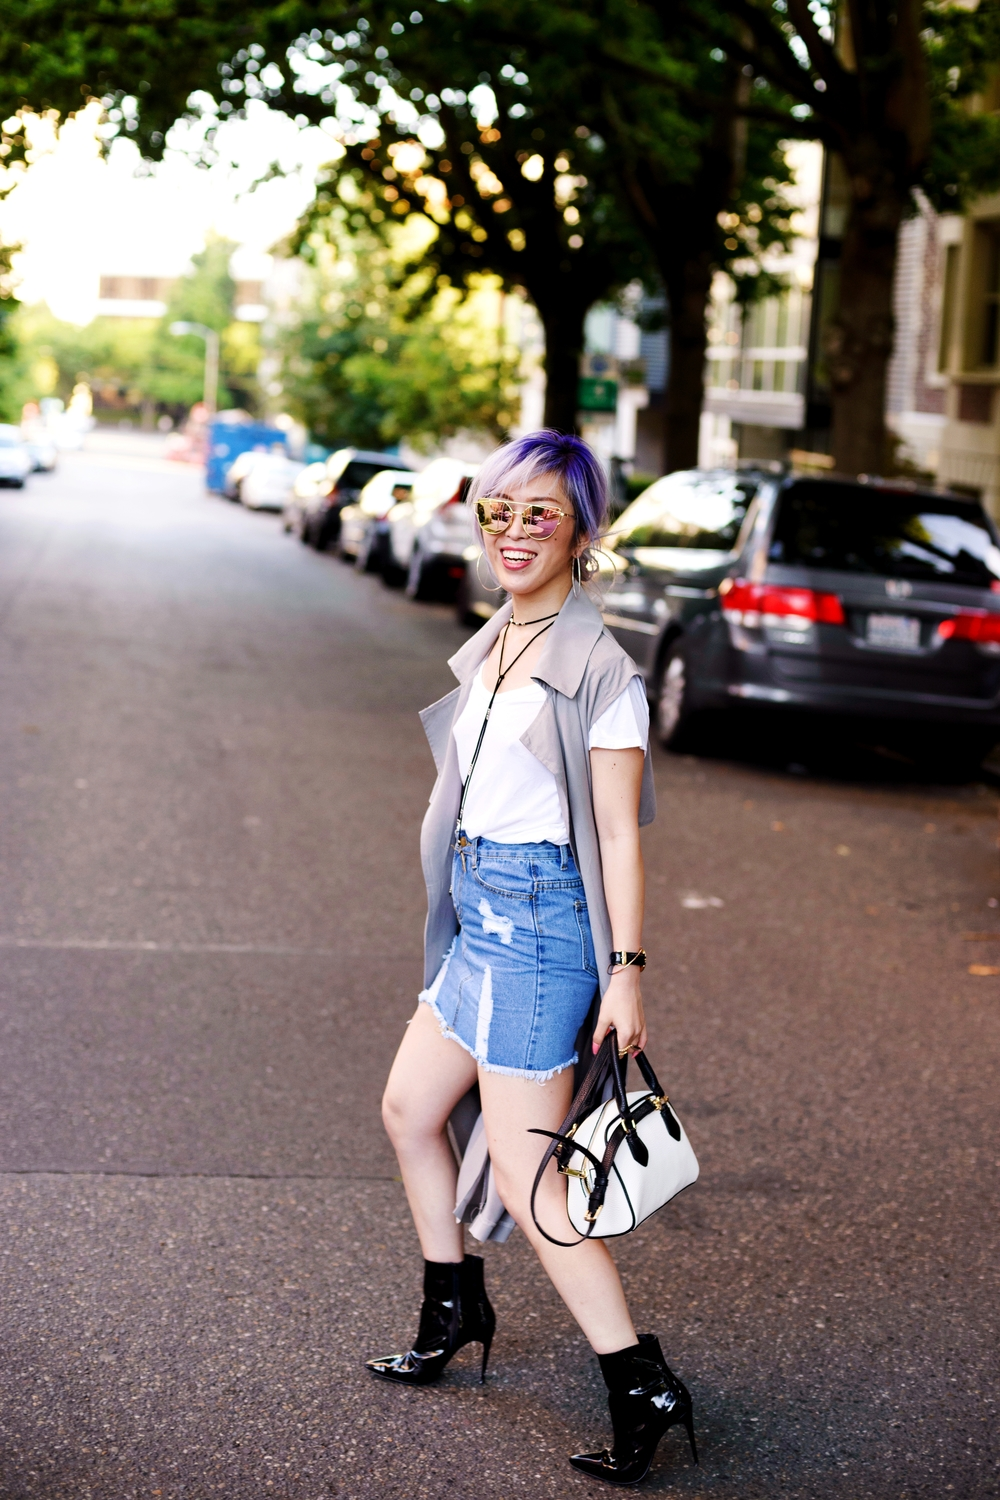 Dezzal Grey Trench Coat_TOPSHOP White T-shirt_She Inside Highwaisted Denim Mini Skit_ALDO Patent Boots_ZARA Mini Bag_Suede Choker_Daniel Wellington Watch_Aikas Love Cloeset_Seattle Fashion Blogger from Japan_Lavender Hair_Messy low bun Hair 3